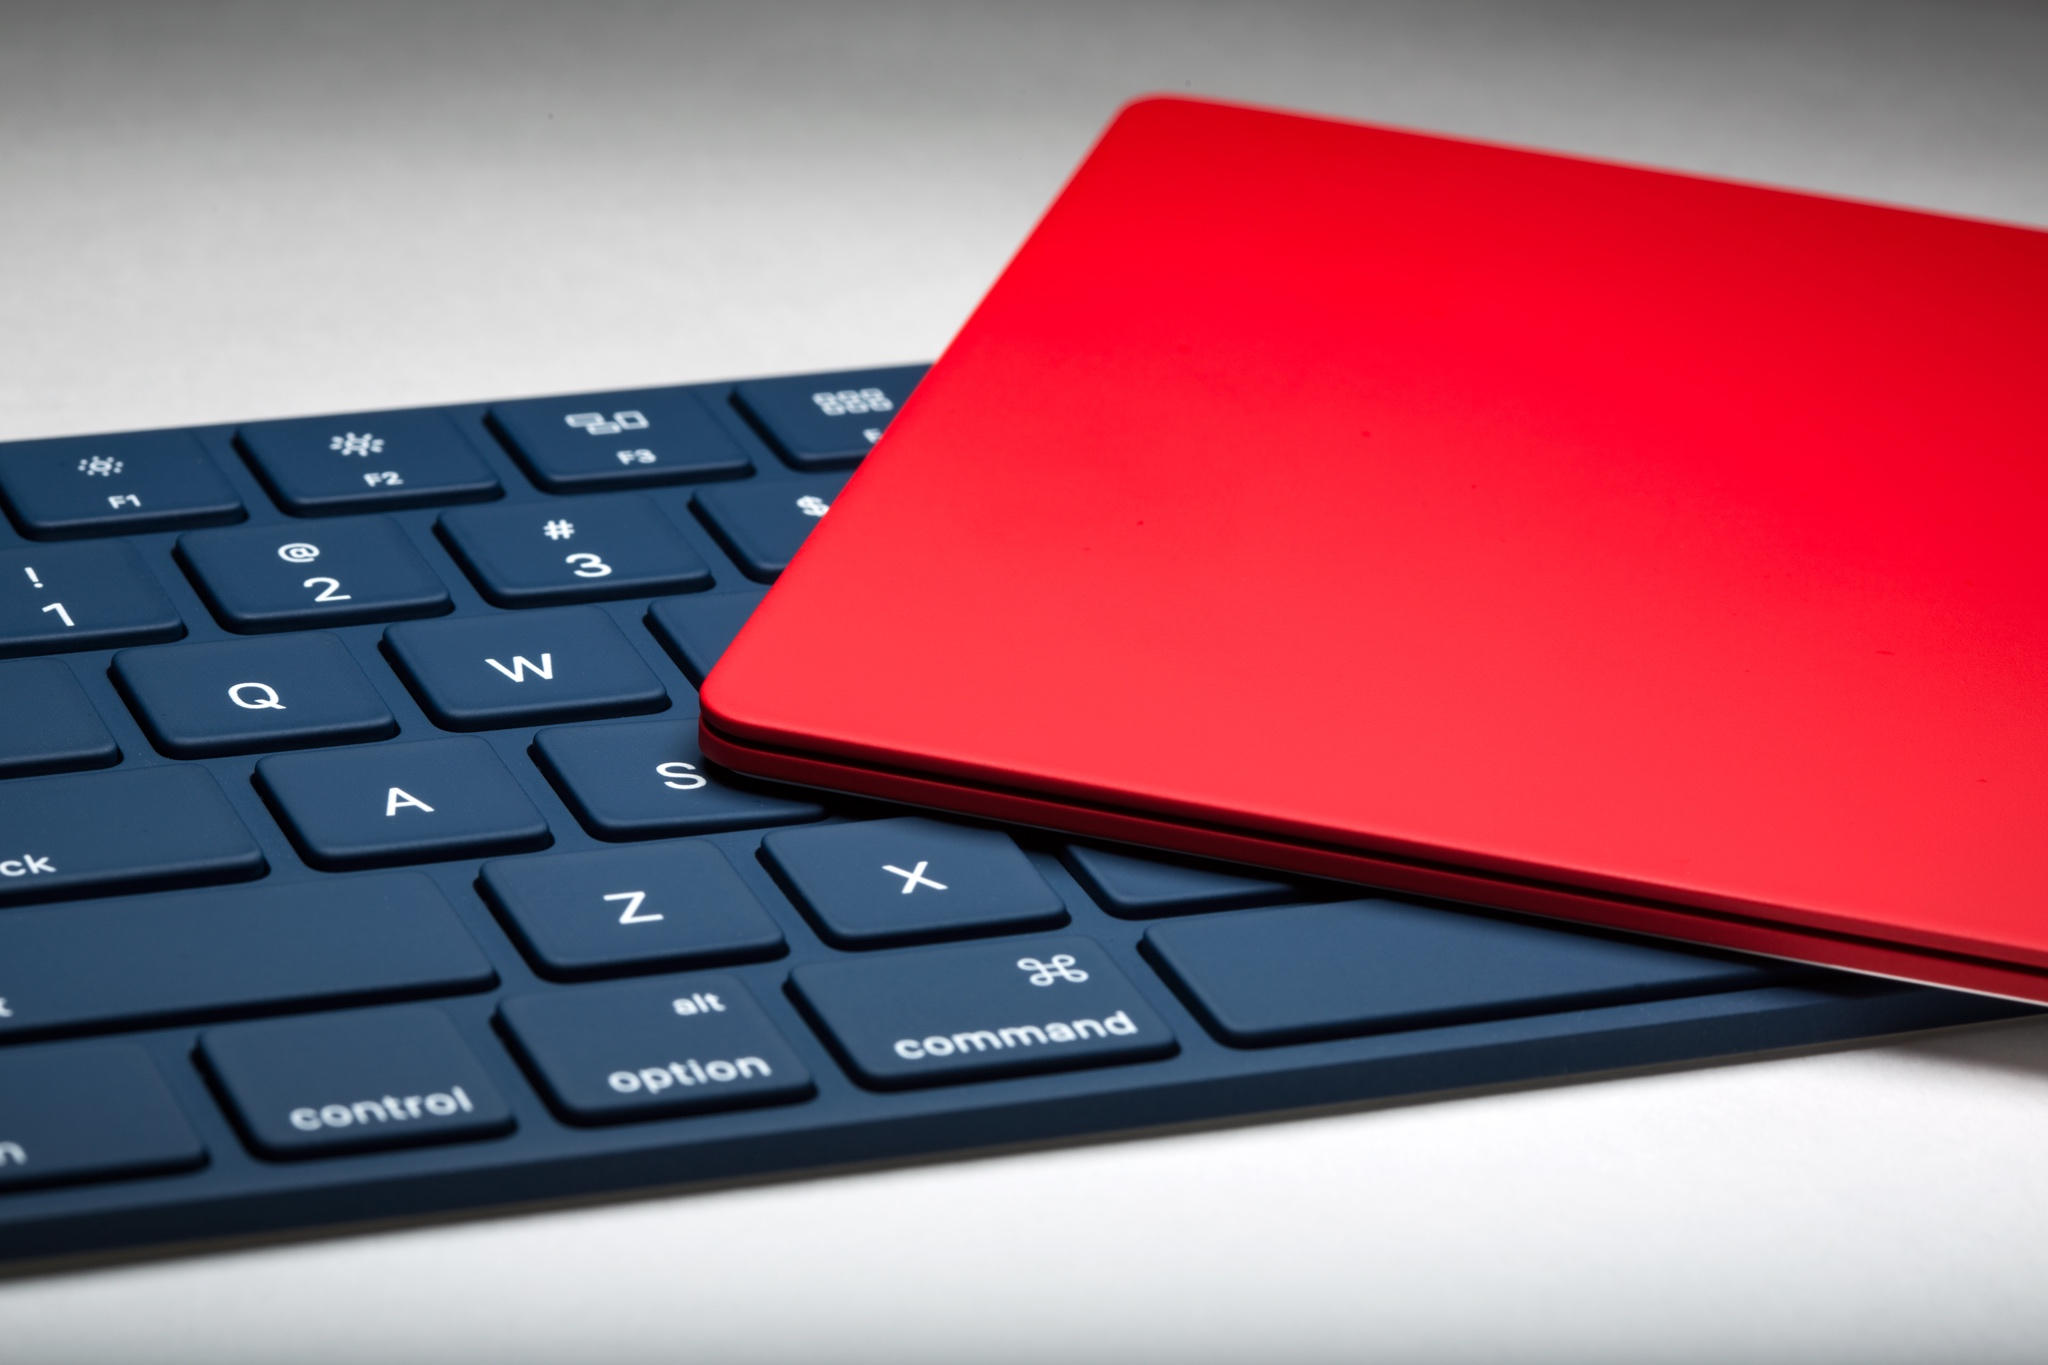 ColorWare: the ultimate way to customize Apple accessories